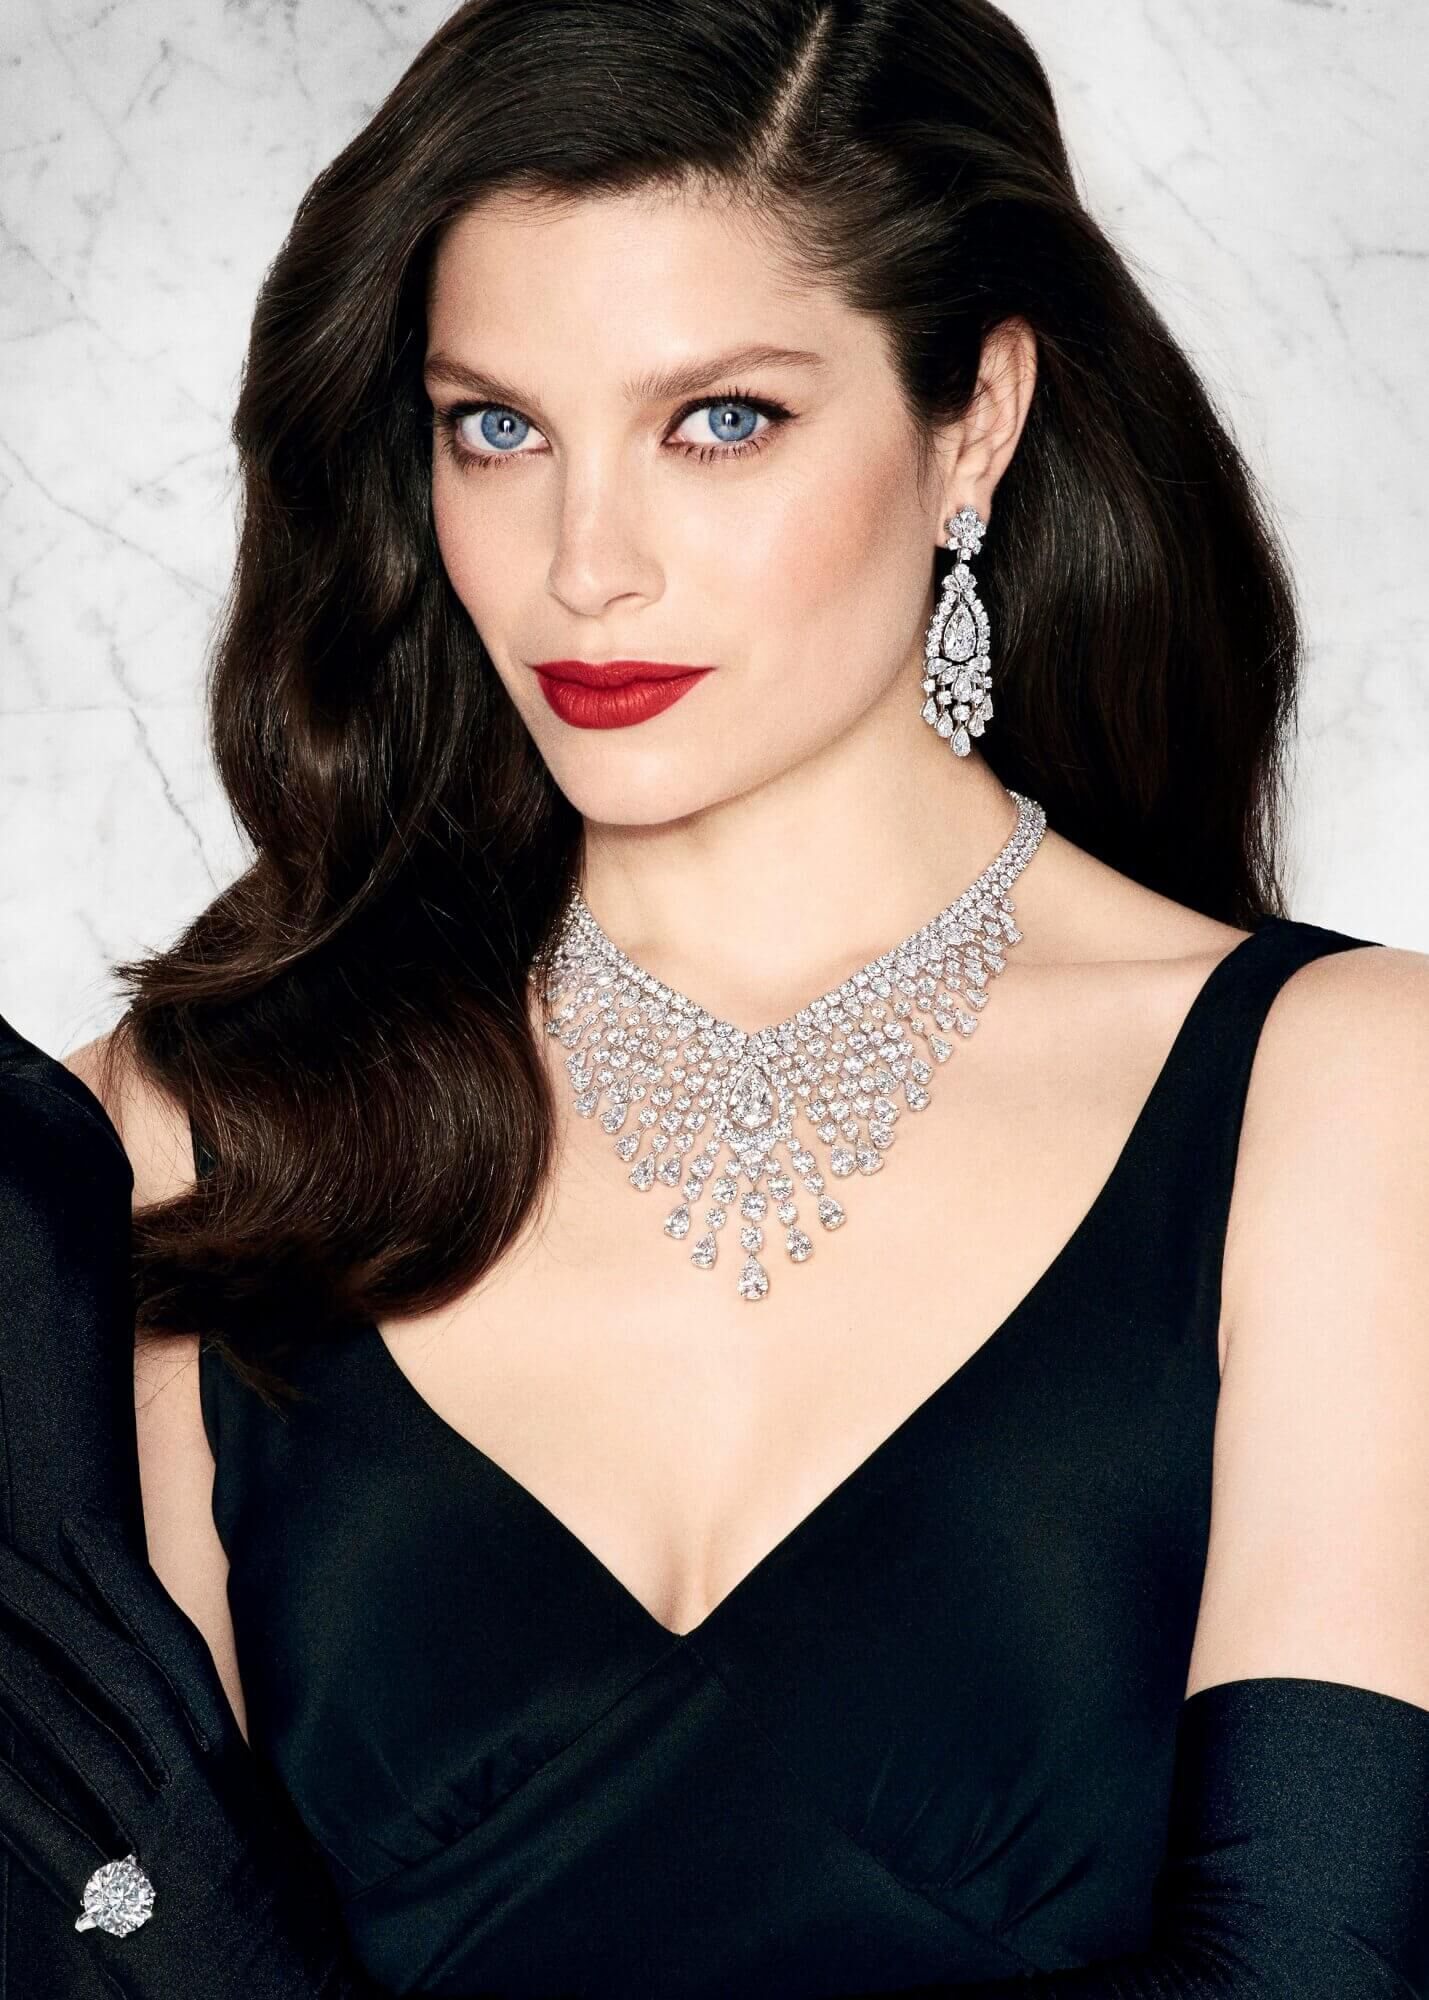 Graff Diamonds Lights Camera Action Article Diamond earrings Diamond necklace and a D Flawless round diamond ring